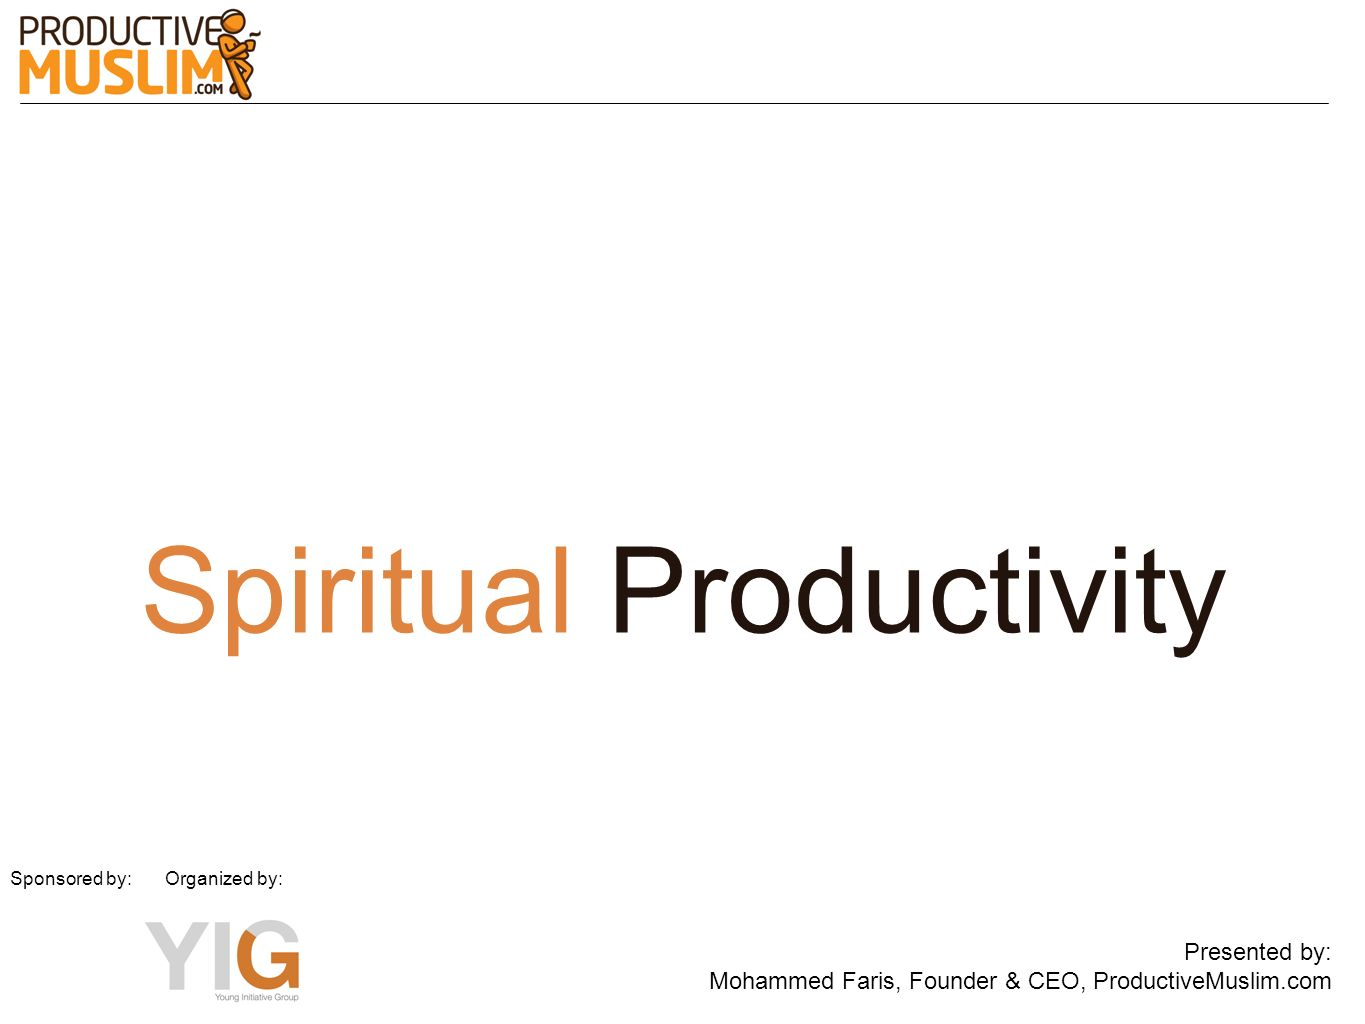 Spiritual Productivity Presented by: Mohammed Faris, Founder & CEO, ProductiveMuslim.com Sponsored by: Organized by: